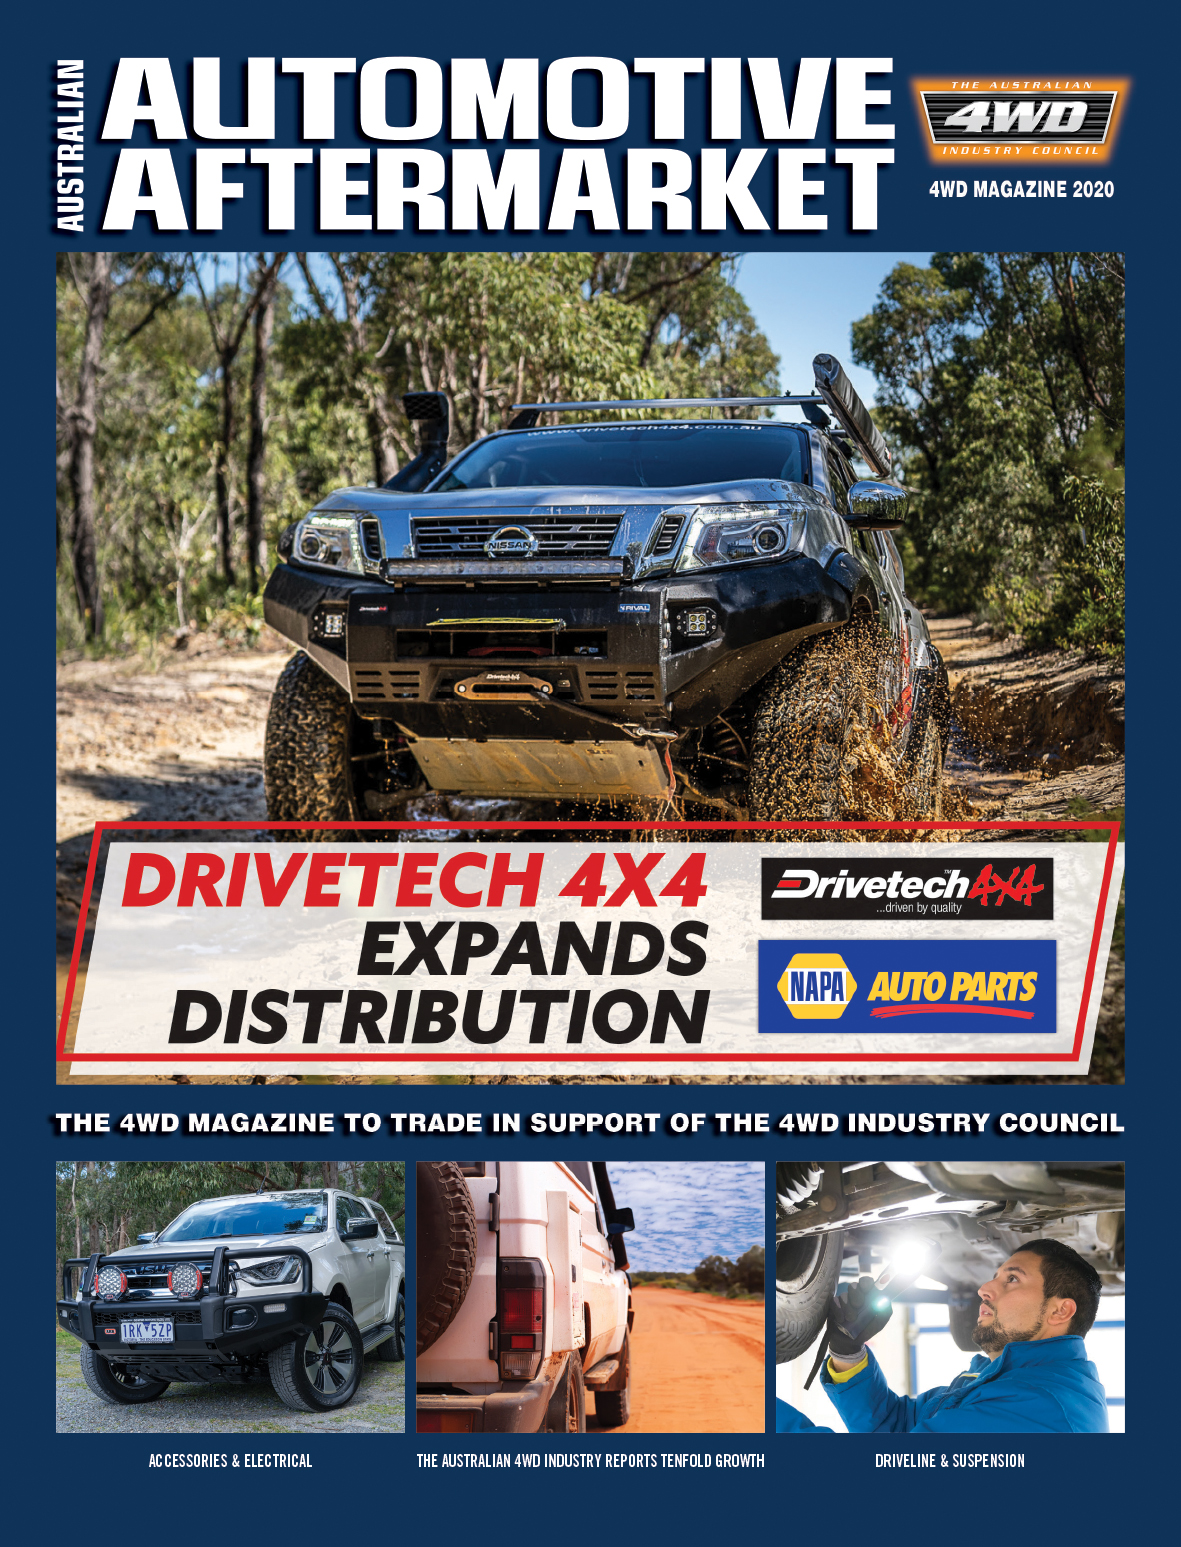 THE 4WD MAGAZINE